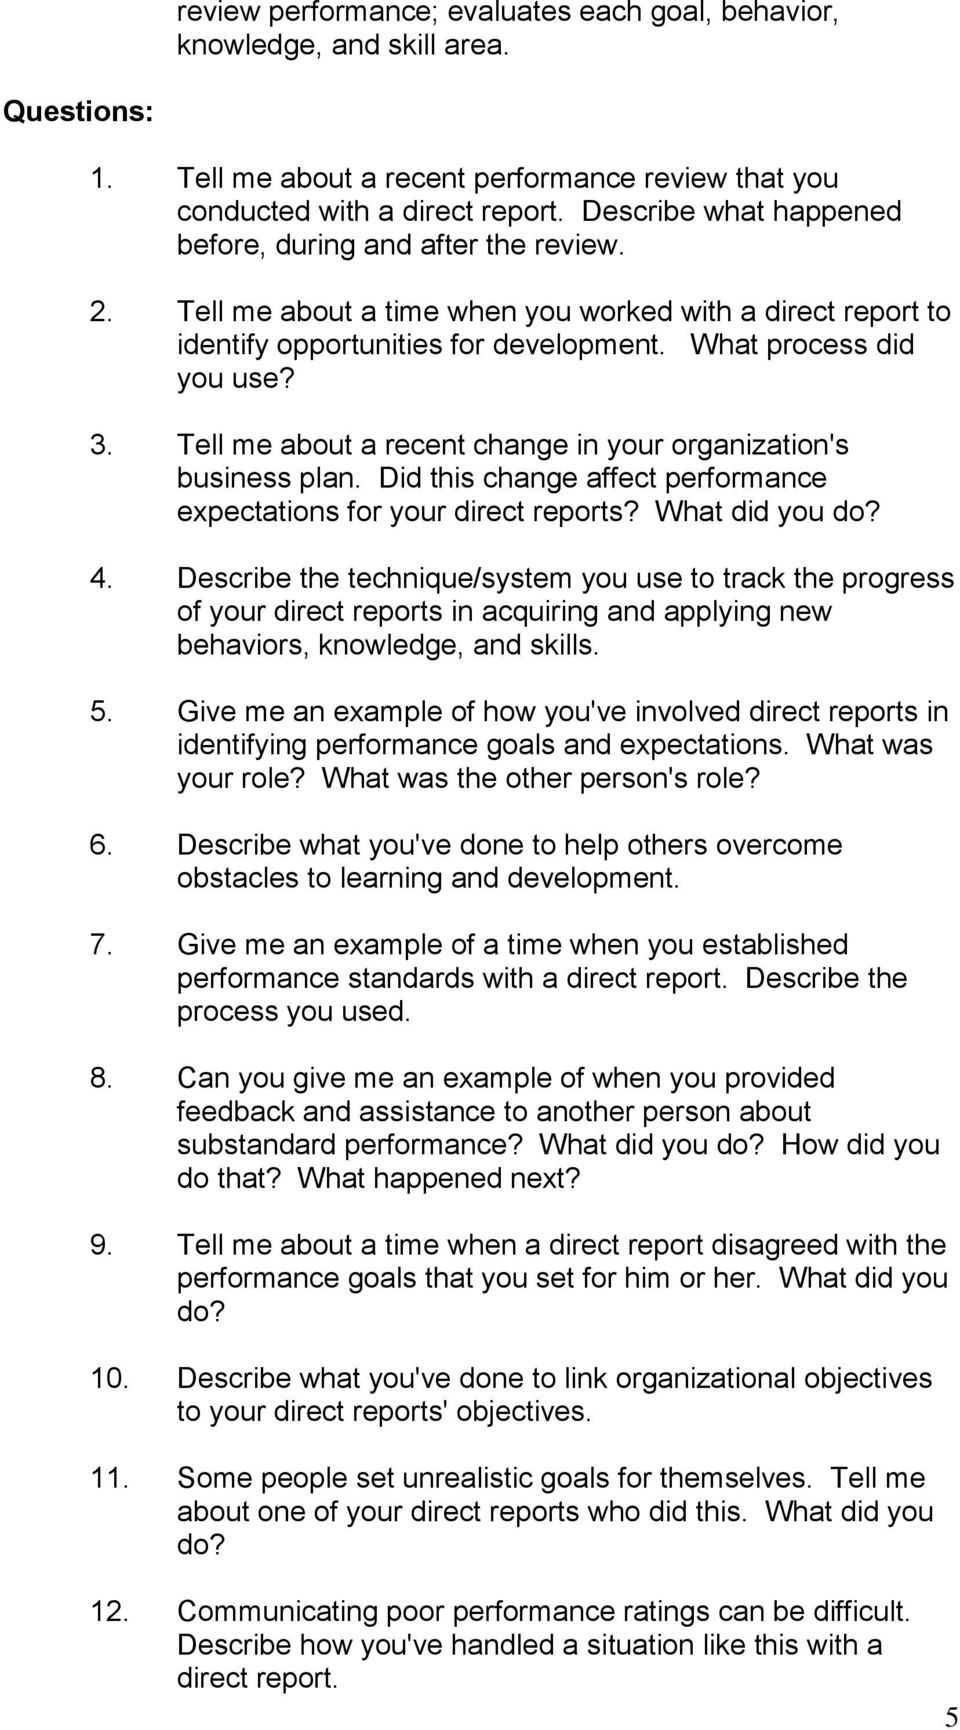 behavioral situational interview question bank table of contents tell me about a recent change in your organization s business plan did this change affect